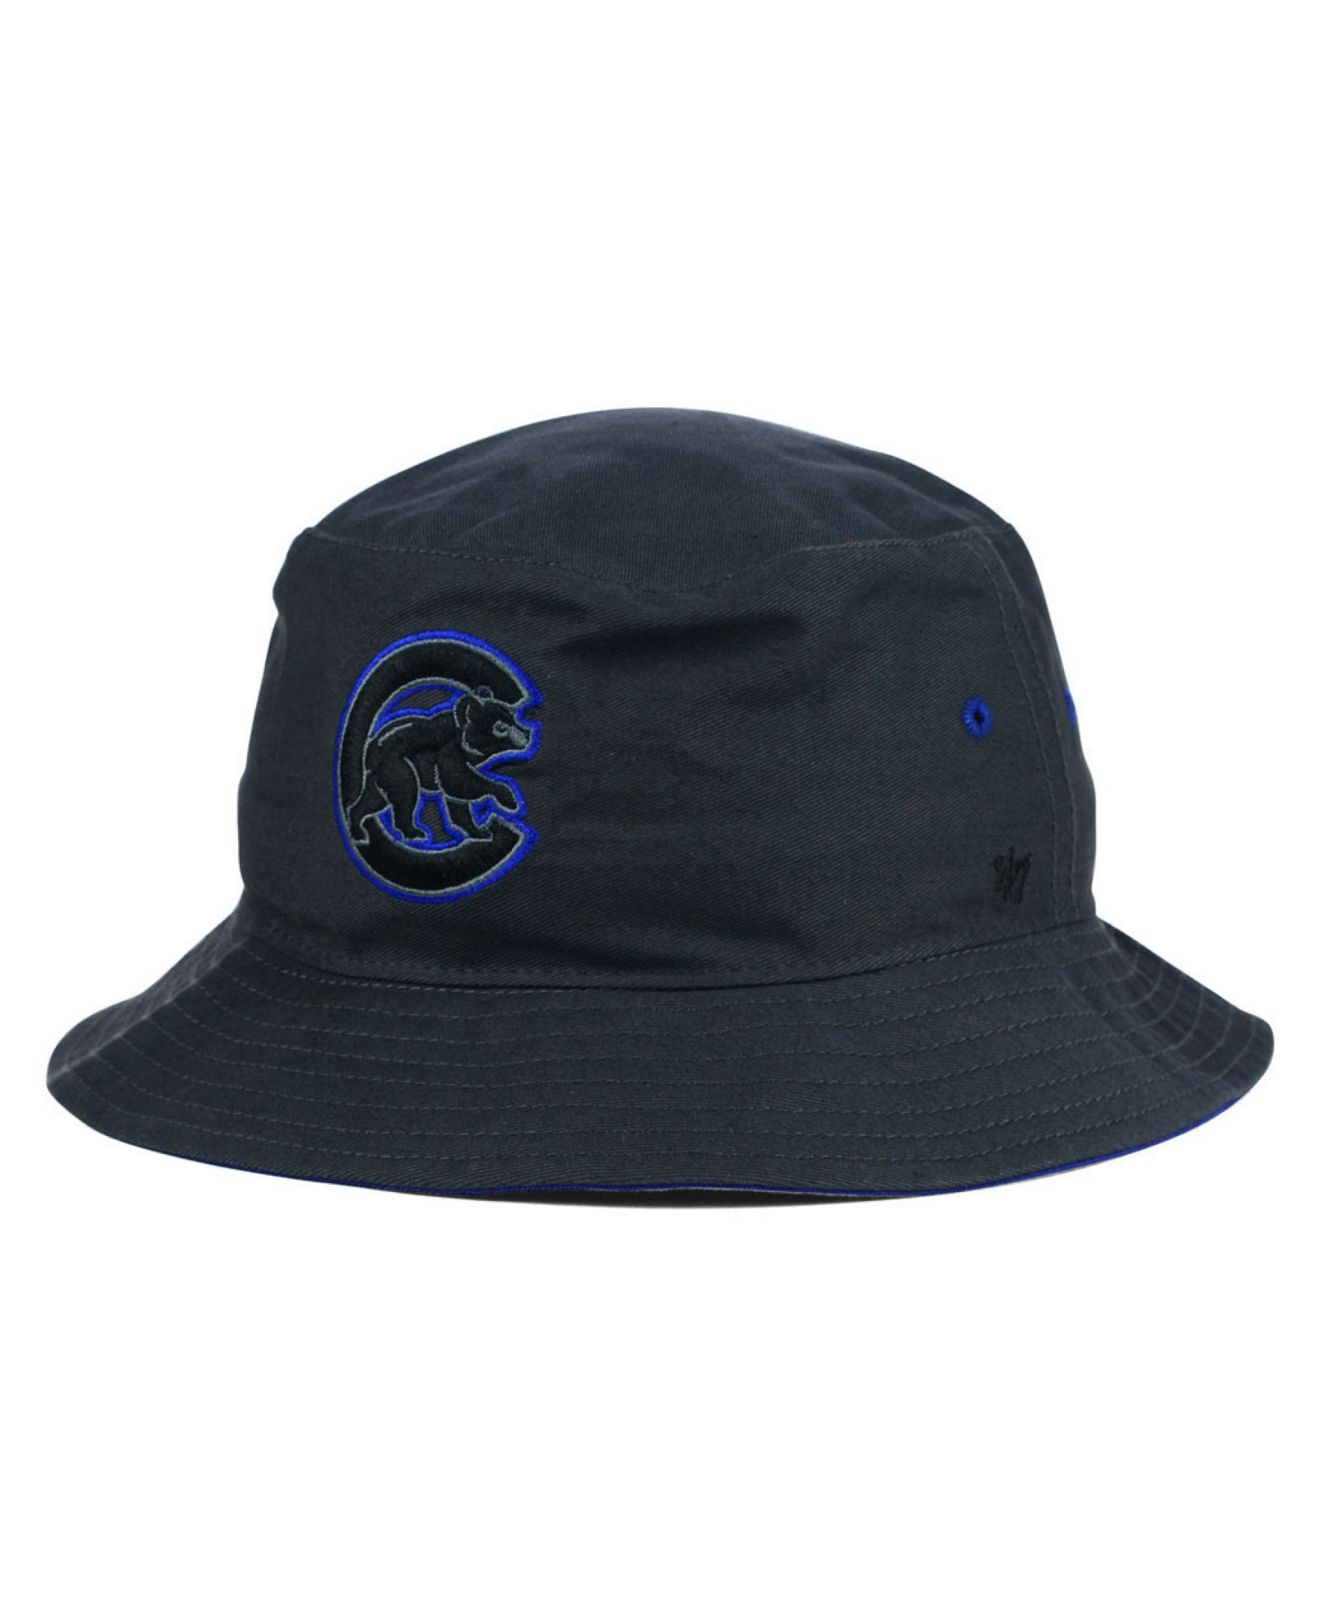 35e7c3ccb15 Lyst - 47 Brand Chicago Cubs Turbo Bucket Hat in Blue